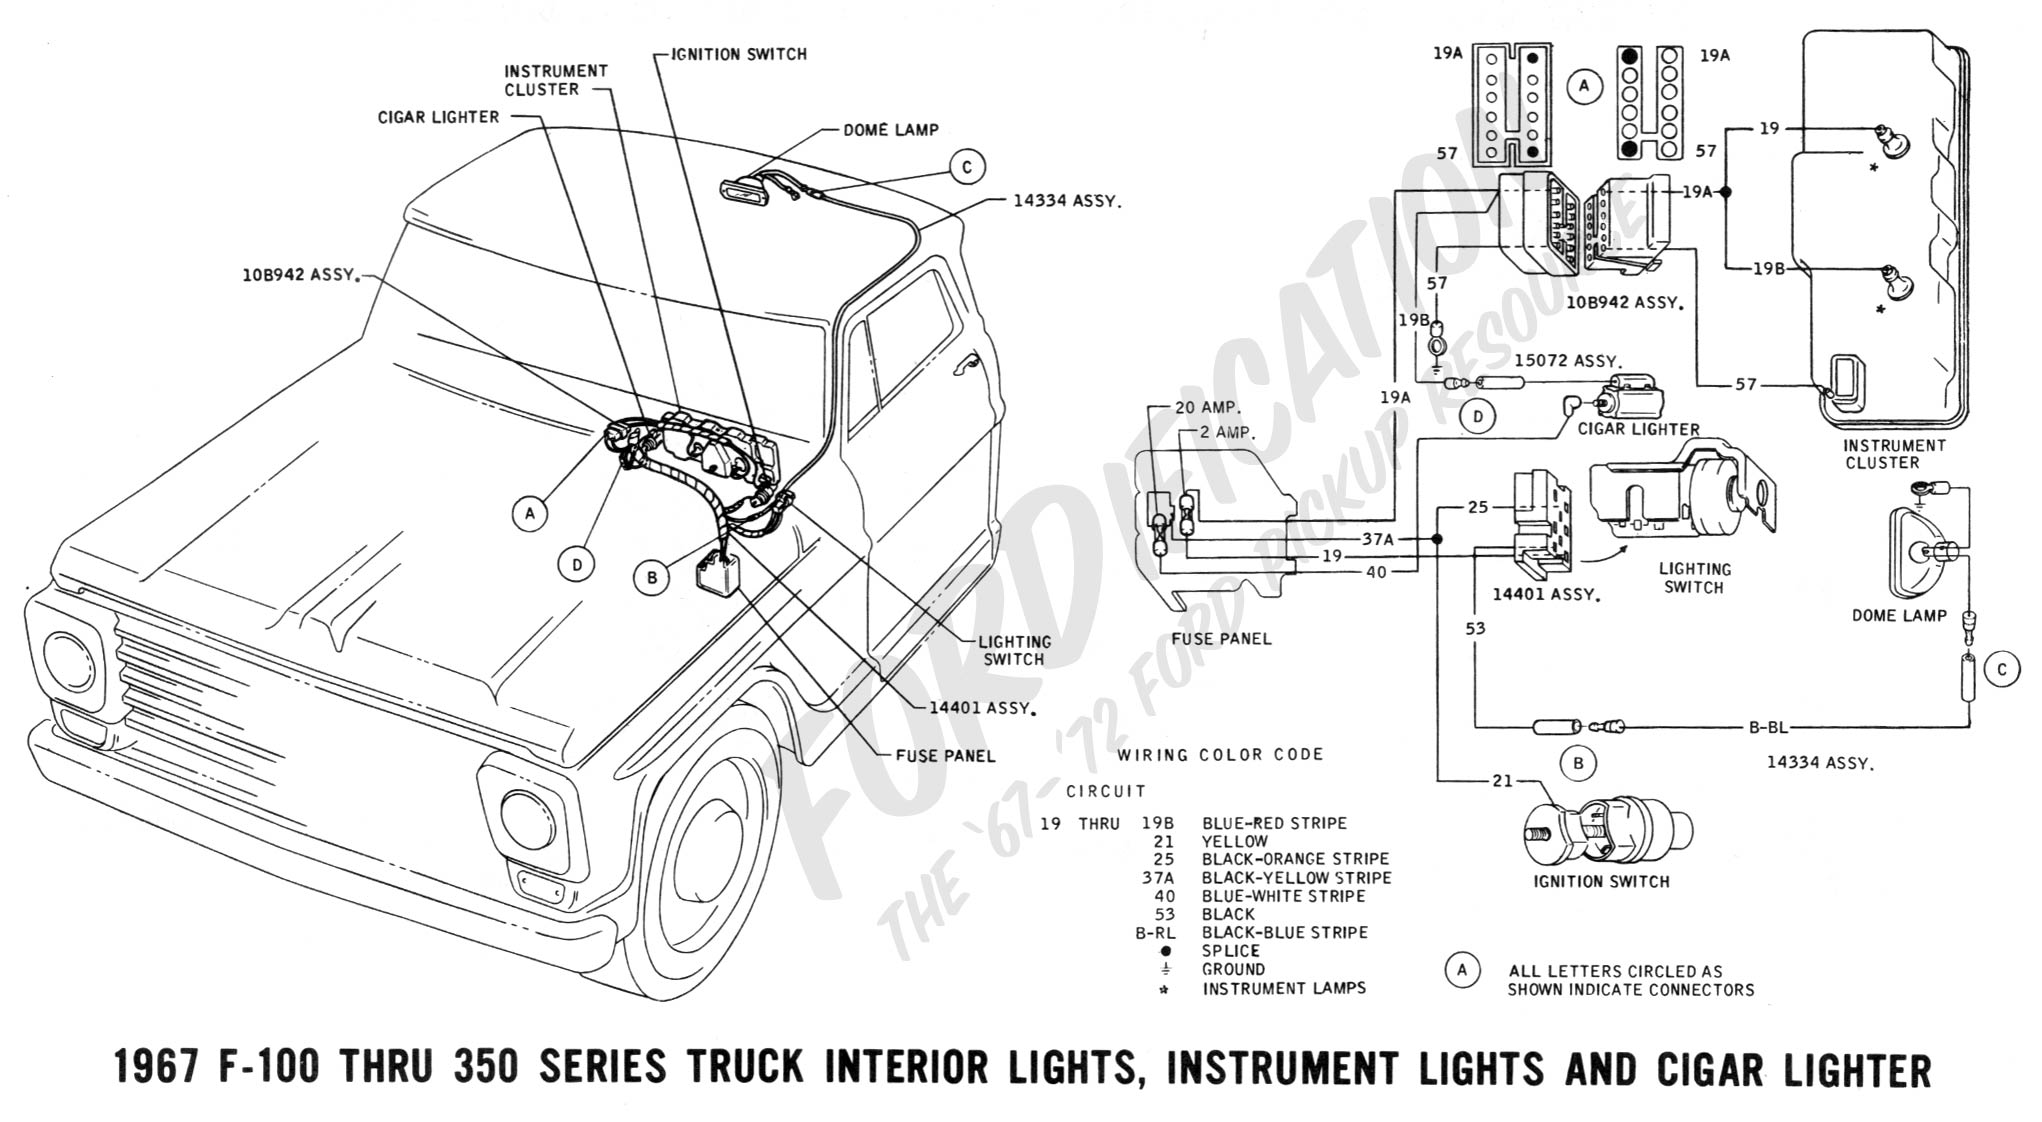 3svdj 78 Cadillac Seville Head Lights Side Lights Work Jumped Blow additionally 76 Corvette Starter Wiring Diagram as well T3648819 Need fuse box diagram 95 dodge dakota likewise 79 Firebird Fuse Box moreover 160851188406. on 76 ford wiper switch wiring diagram